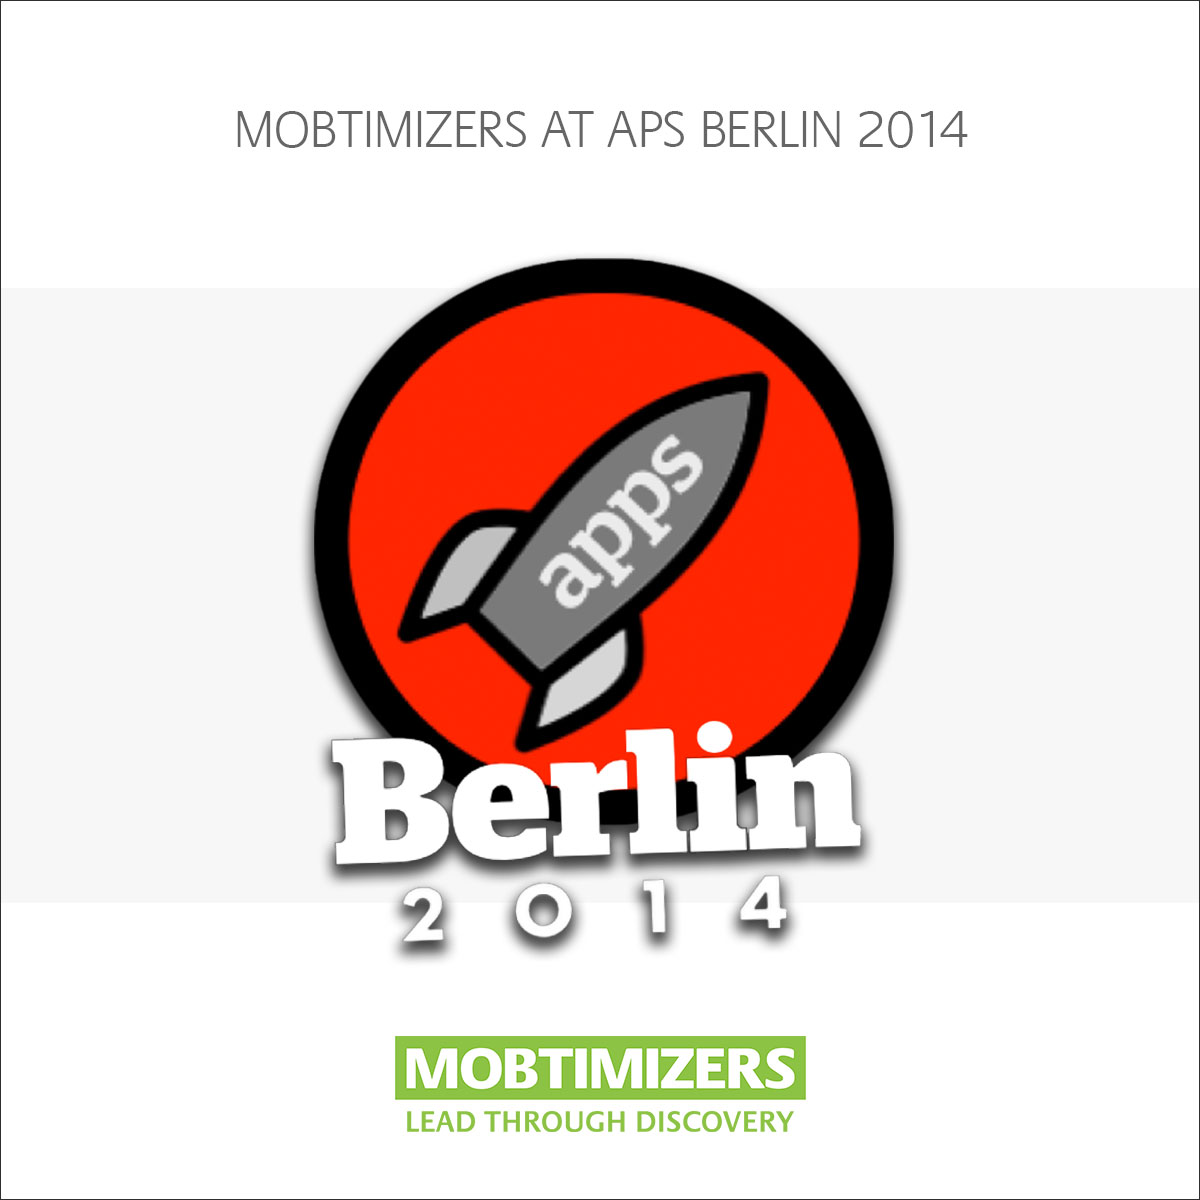 Takeaways from APS Berlin 2014 - App Promotion Summit